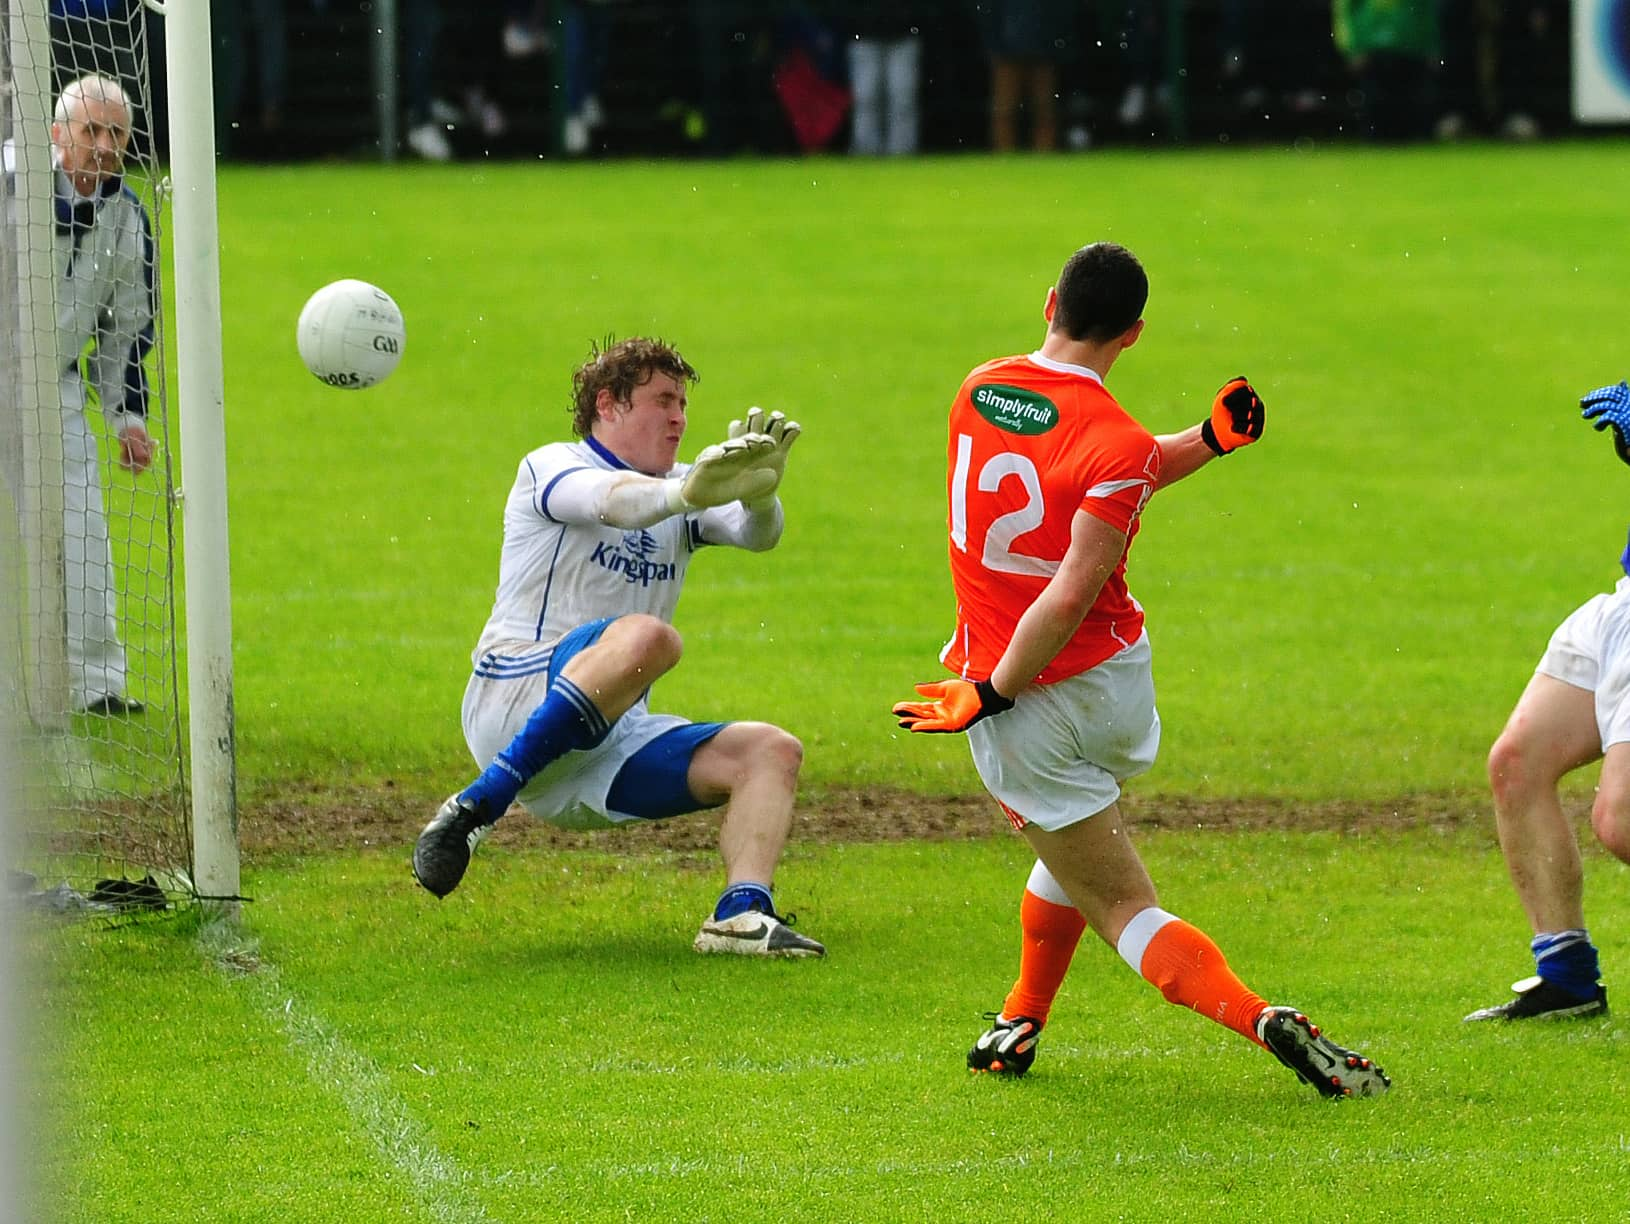 Caolan Rafferty's goal against Cavan helped Armagh on their way to the Ulster Championship semi-final but a suspected broken hand sustained in training has ruled him out of the big game against Monaghan on Sunday week. Picture: Conor Greenan